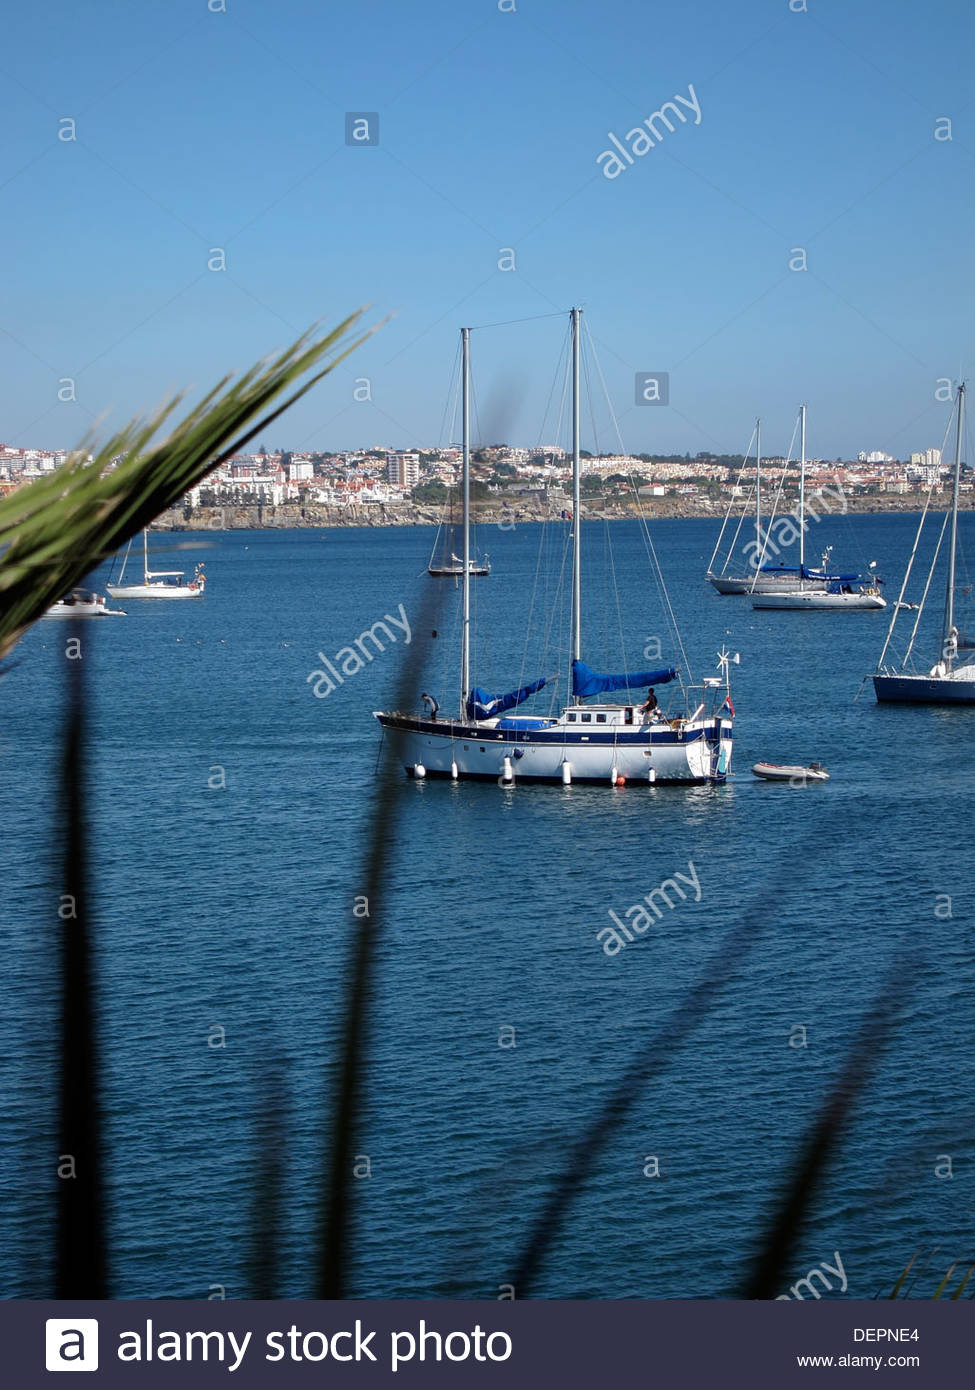 Moored twin masted Sailing boat, Cascais, Portugal Stock Photo